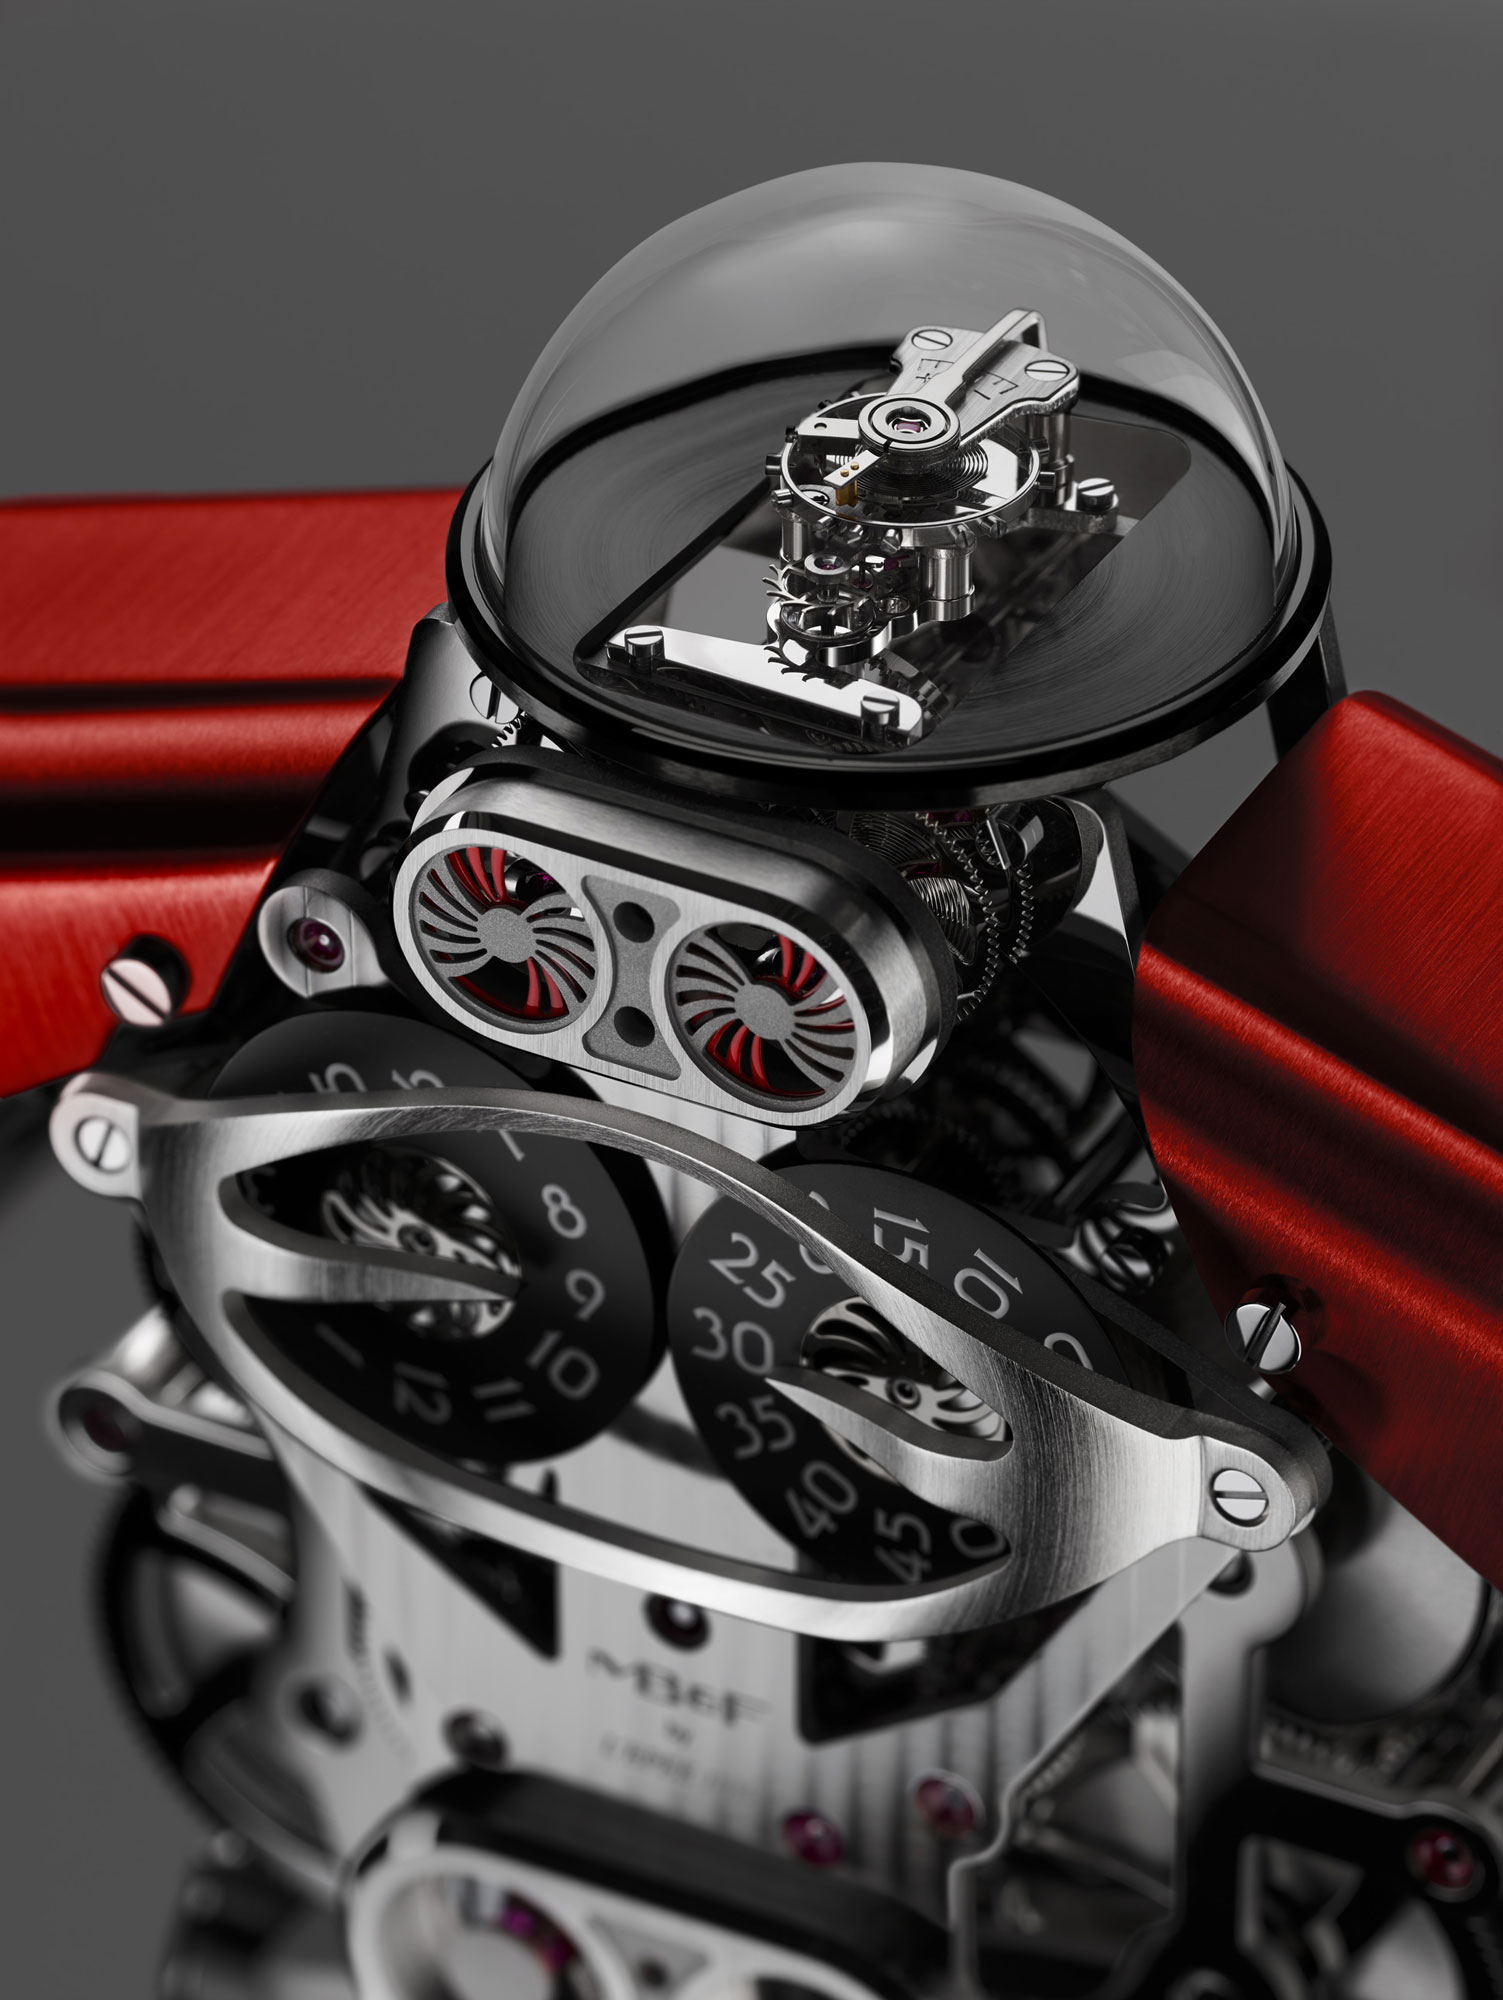 Melchior Only Watch 2015 - MB&F by L'Epée 1839